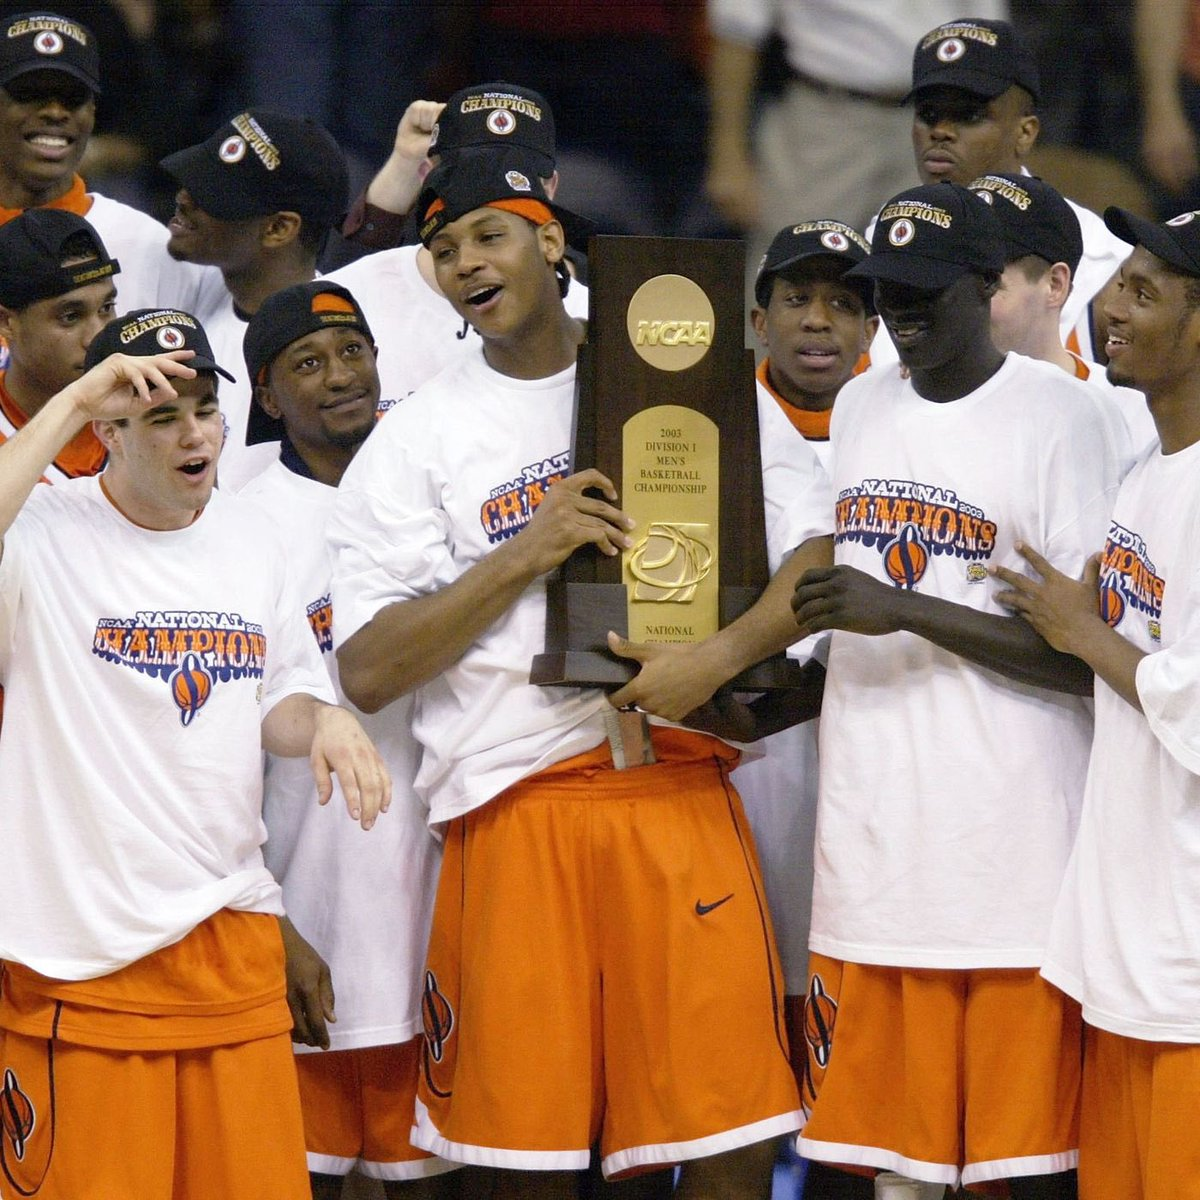 #OnThisDay in Sports History, in 2003 #Syracuse beat #Kansas, 81-78 for the #NCAAChampionship. It's is the Orangemen first and only title.   Carmelo Anthony named tournament Most Outstanding Player with 20 points and 10 rebounds. pic.twitter.com/bekrmQsTQT